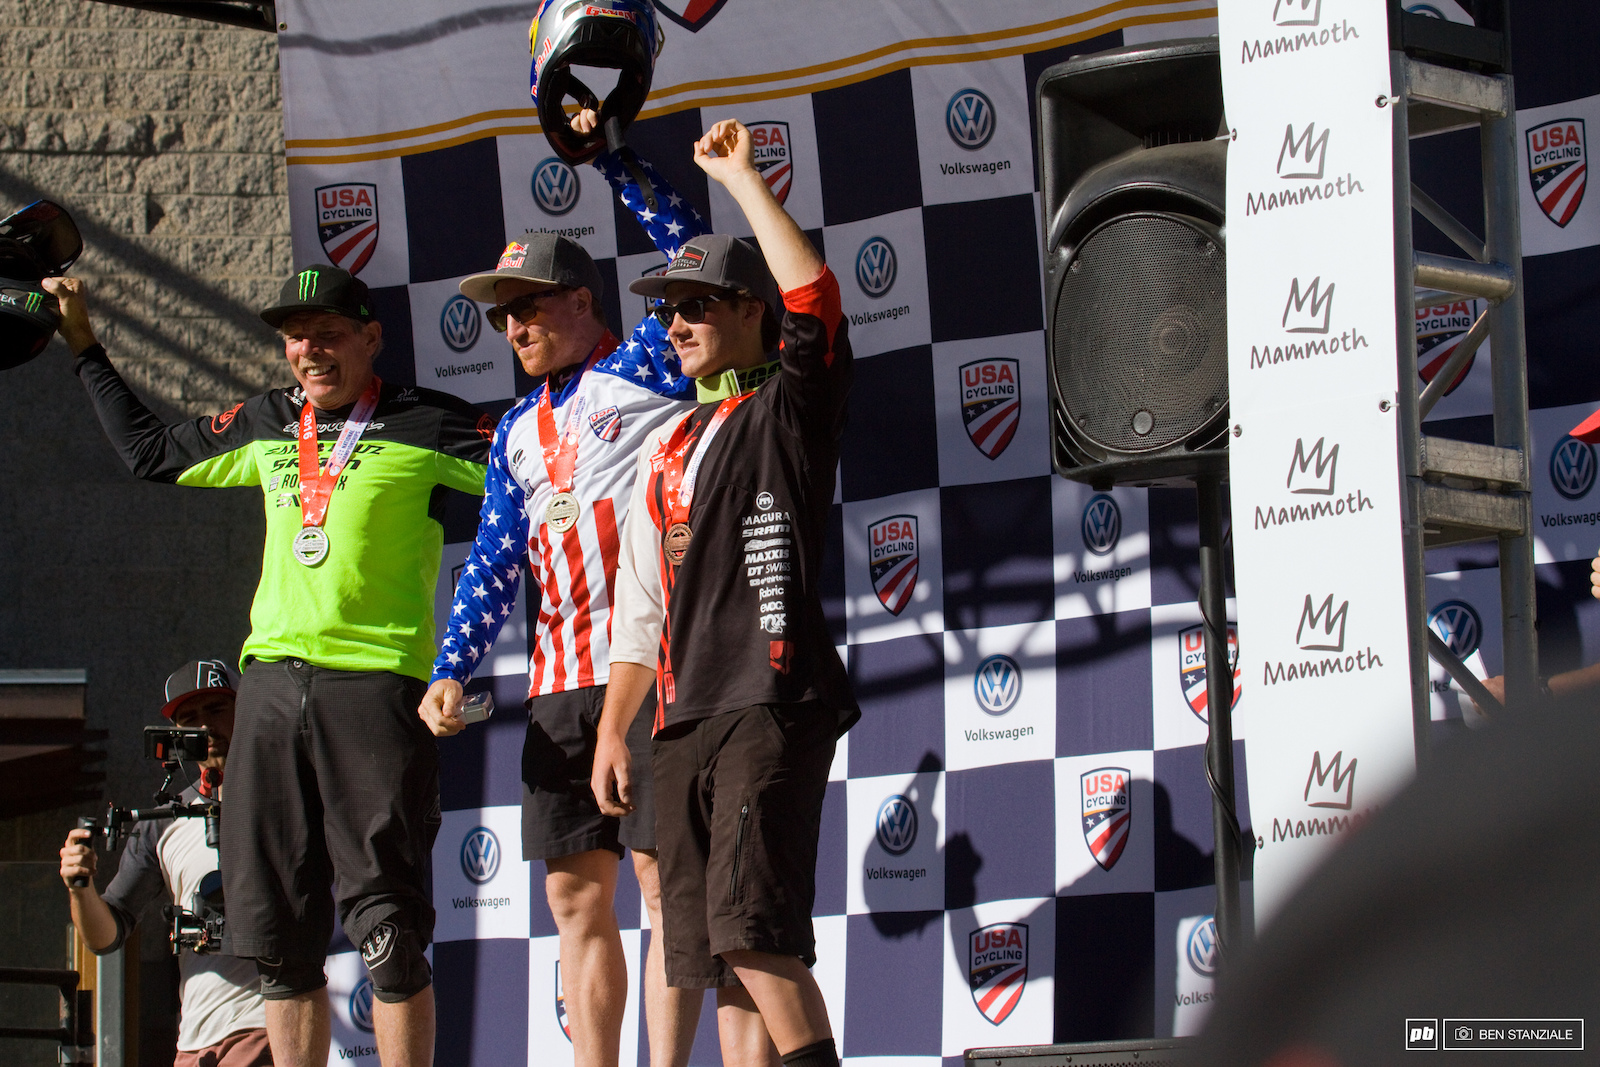 USA Nationals Mens Pro DH Podium. 1- Aaron Gwin. 2- Mitch Ropelato. 3- Shane Leslie. Mitch s agent as pictured .